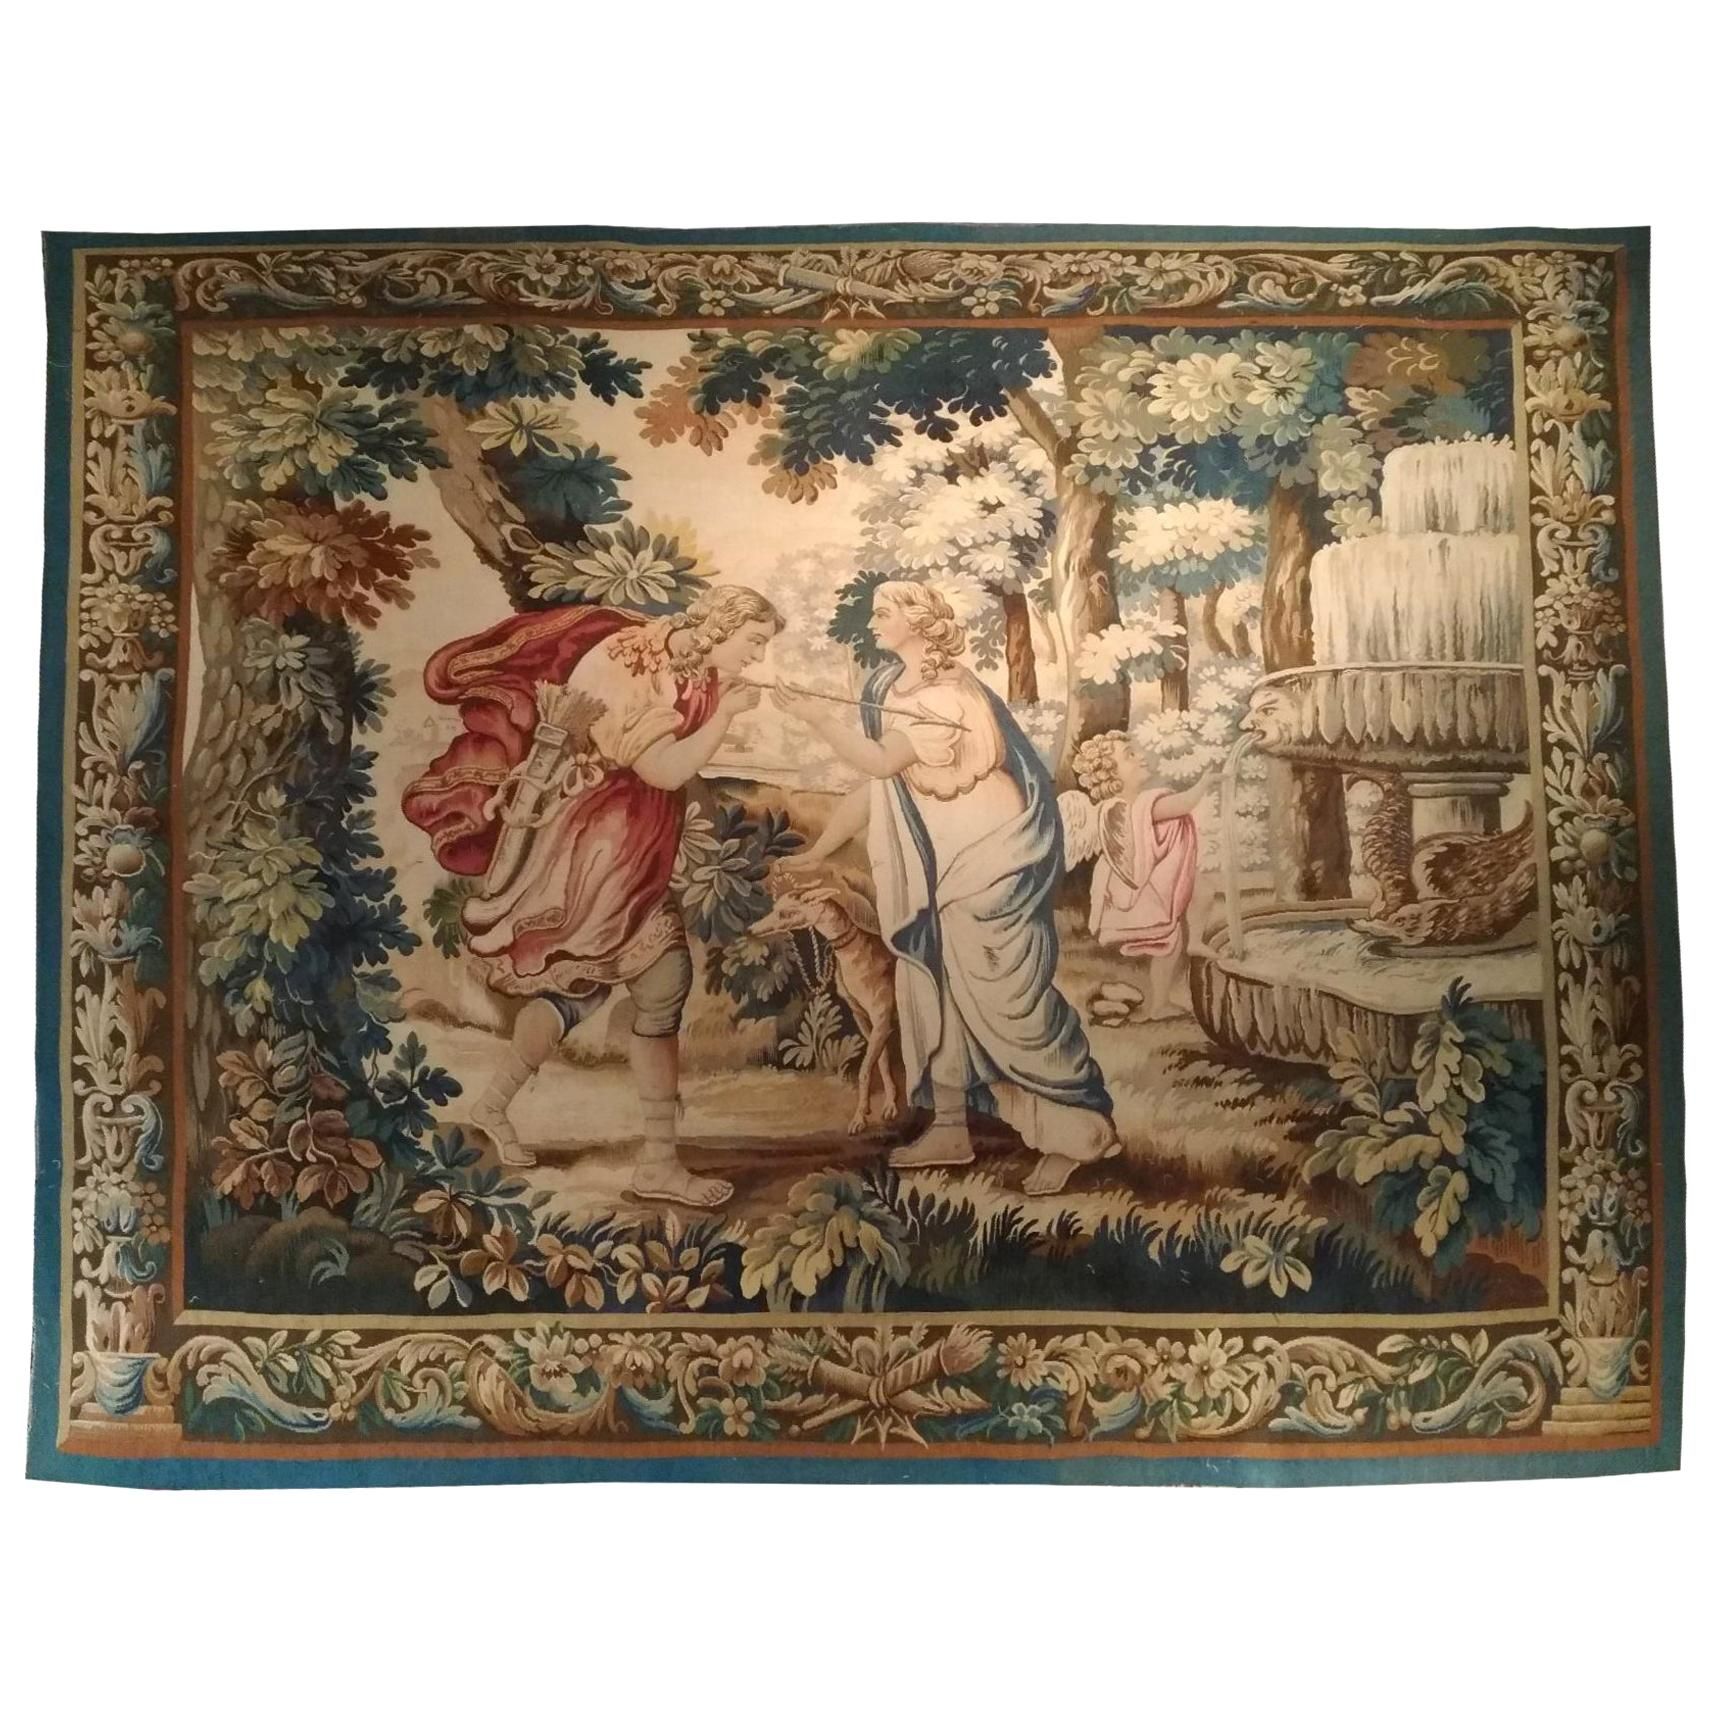 1009 - Luxurious 19th Century Aubusson Tapestry with a Beautiful Romantic